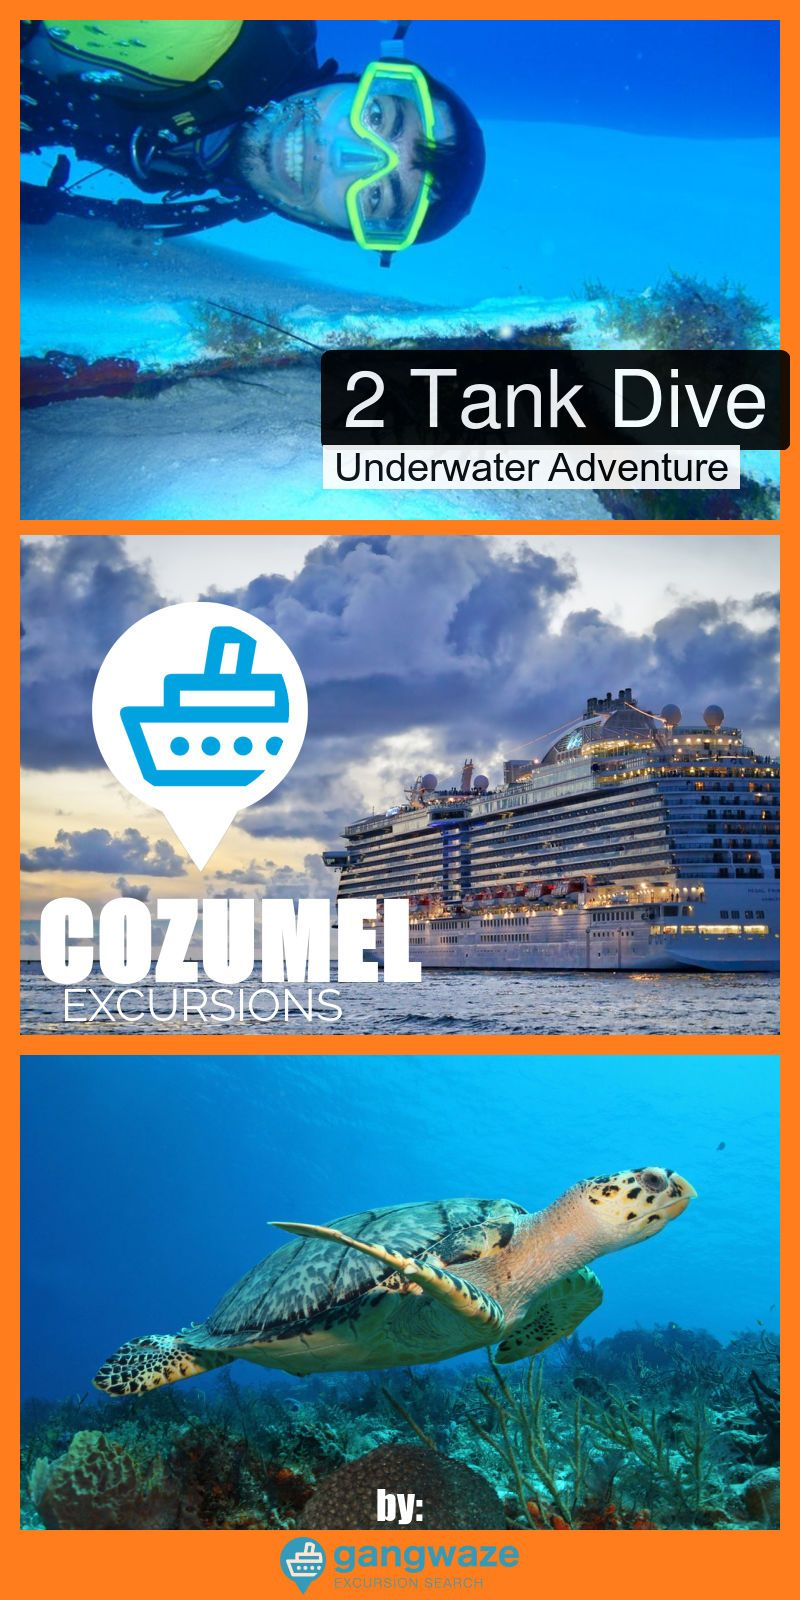 2 Tank Scuba Diving Trip Cruise Excursion Cozumel Cruise Port